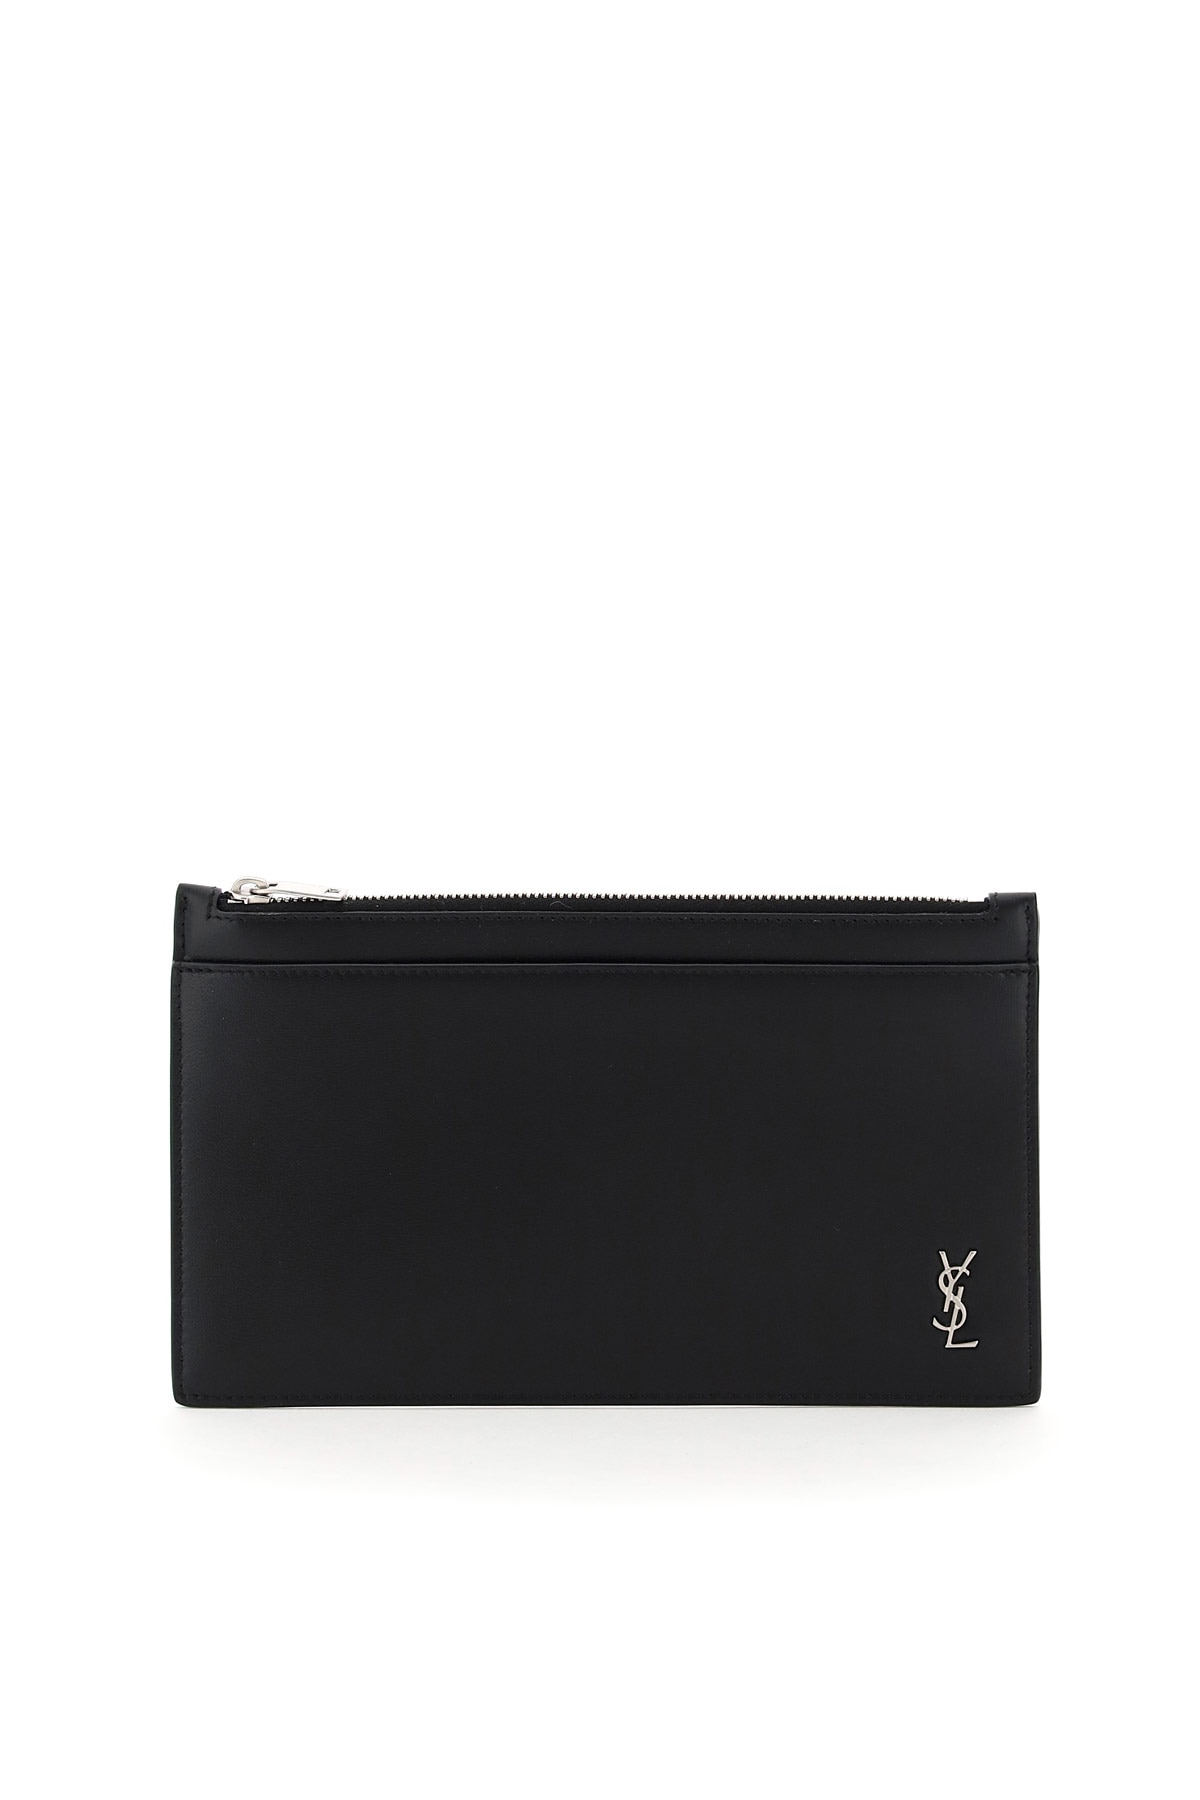 SAINT LAURENT SMALL POUCH YSL OS Black Leather